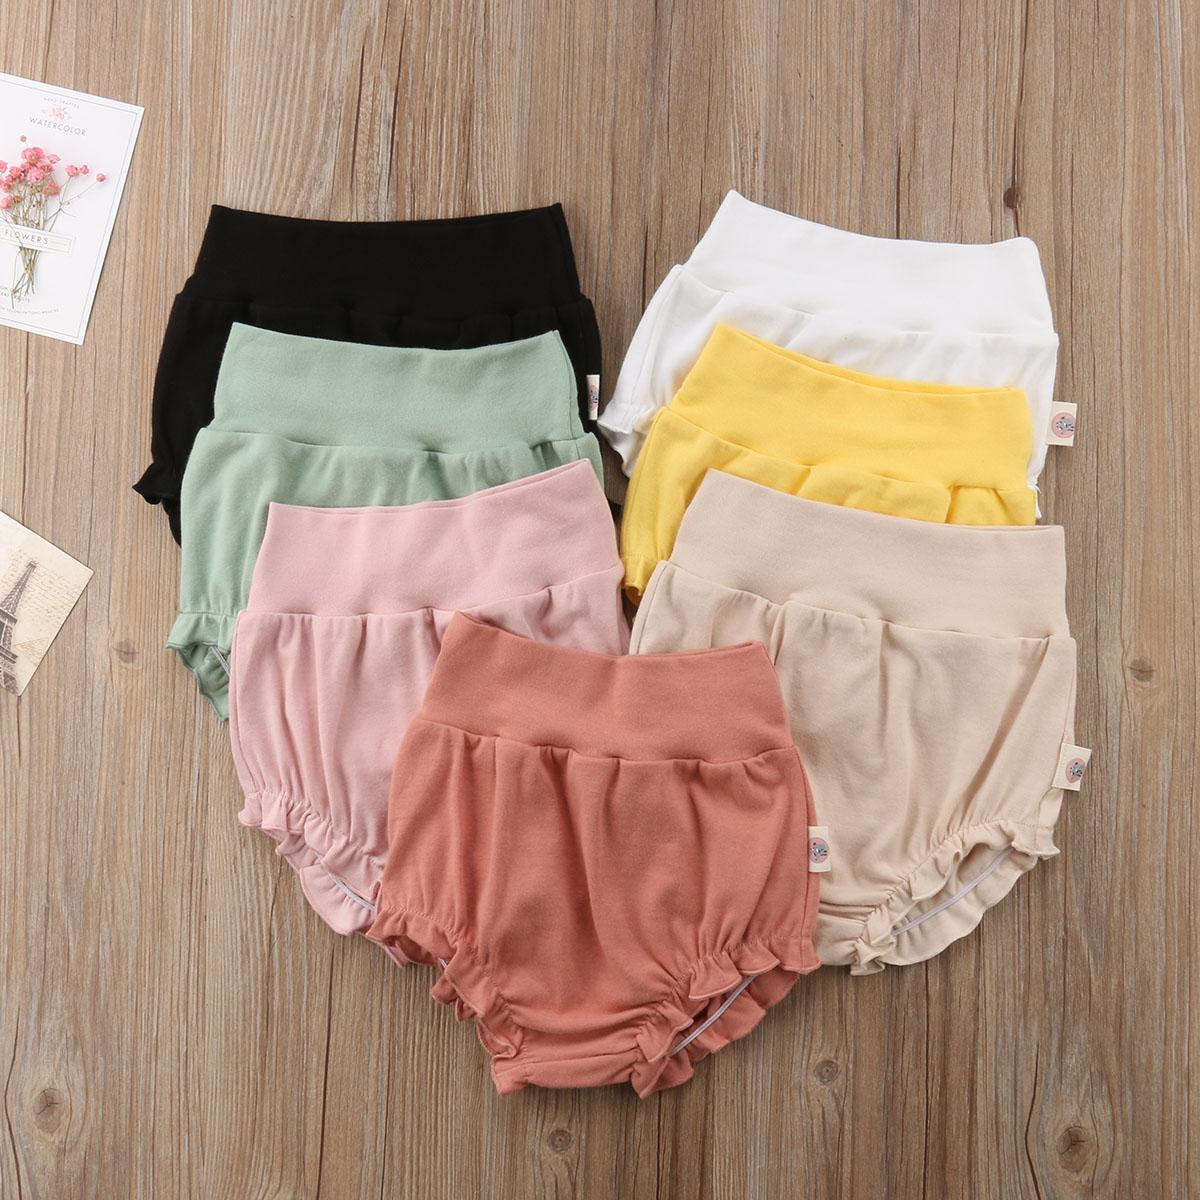 Summer Toddler Infant Baby Girl Boy Cotton Casual Shorts PP Pants Baby Kids Clothes Children Trousers Bottoms 0-4T